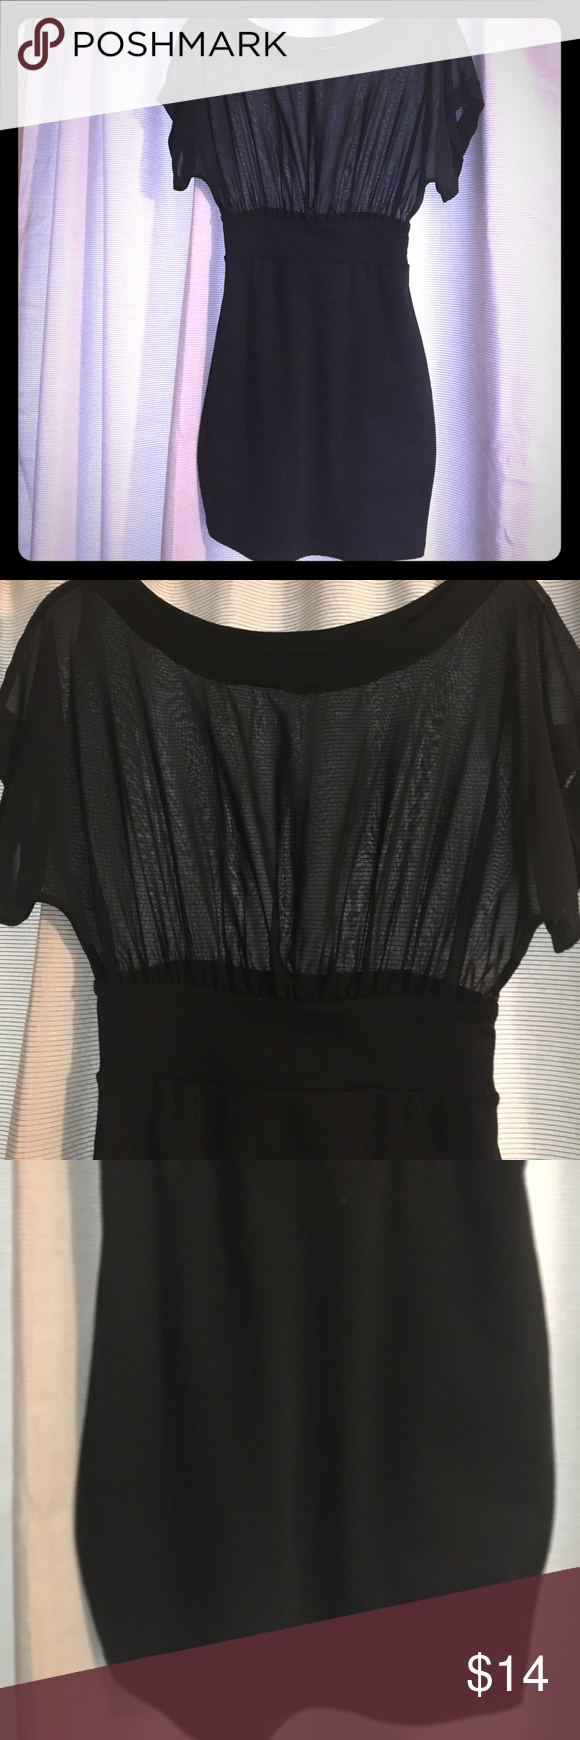 MAKE AN OFFER‼️ Solemio Fitted Sheer Top Dress M Super chic dress from Solemio. Bought at boutique. Top is Sheer black. The bottom half is fitted black. Excellent Condition. Solemio Dresses Mini